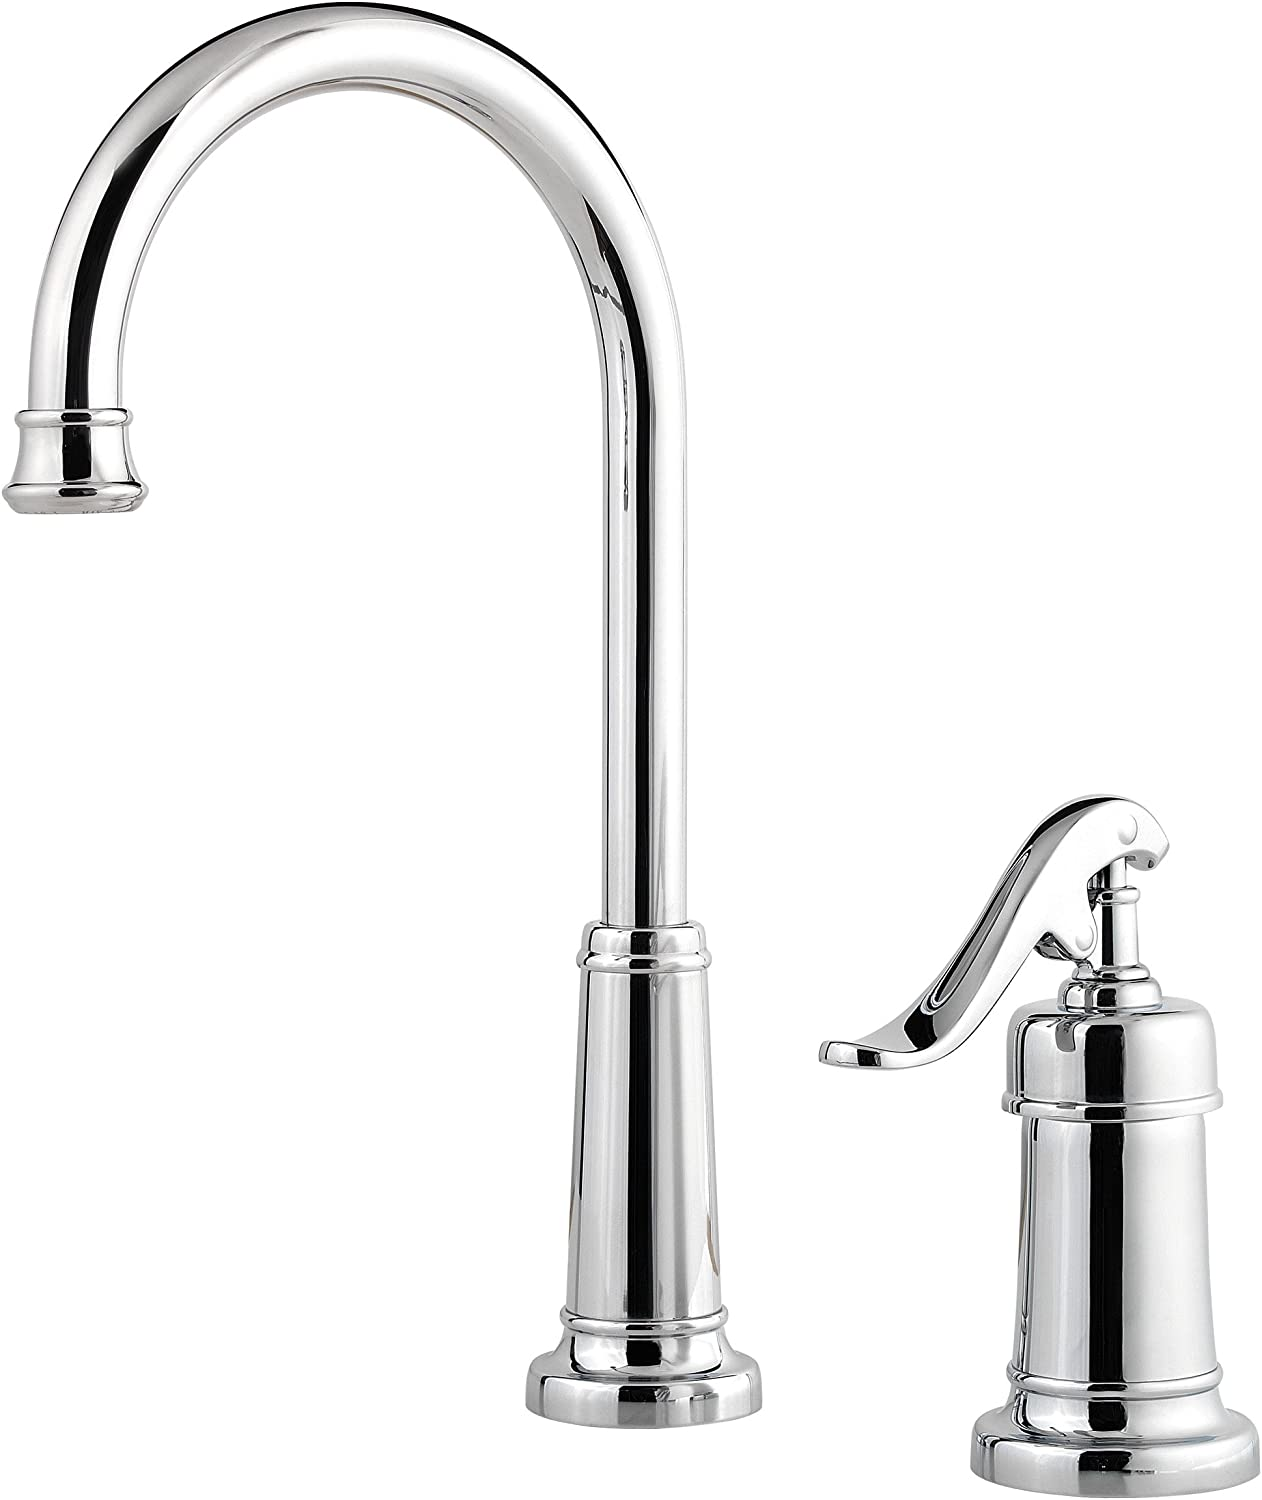 Pfister LG72YP2C Ashfield 1-Handle Bar/Prep Kitchen Faucet, Polished Chrome